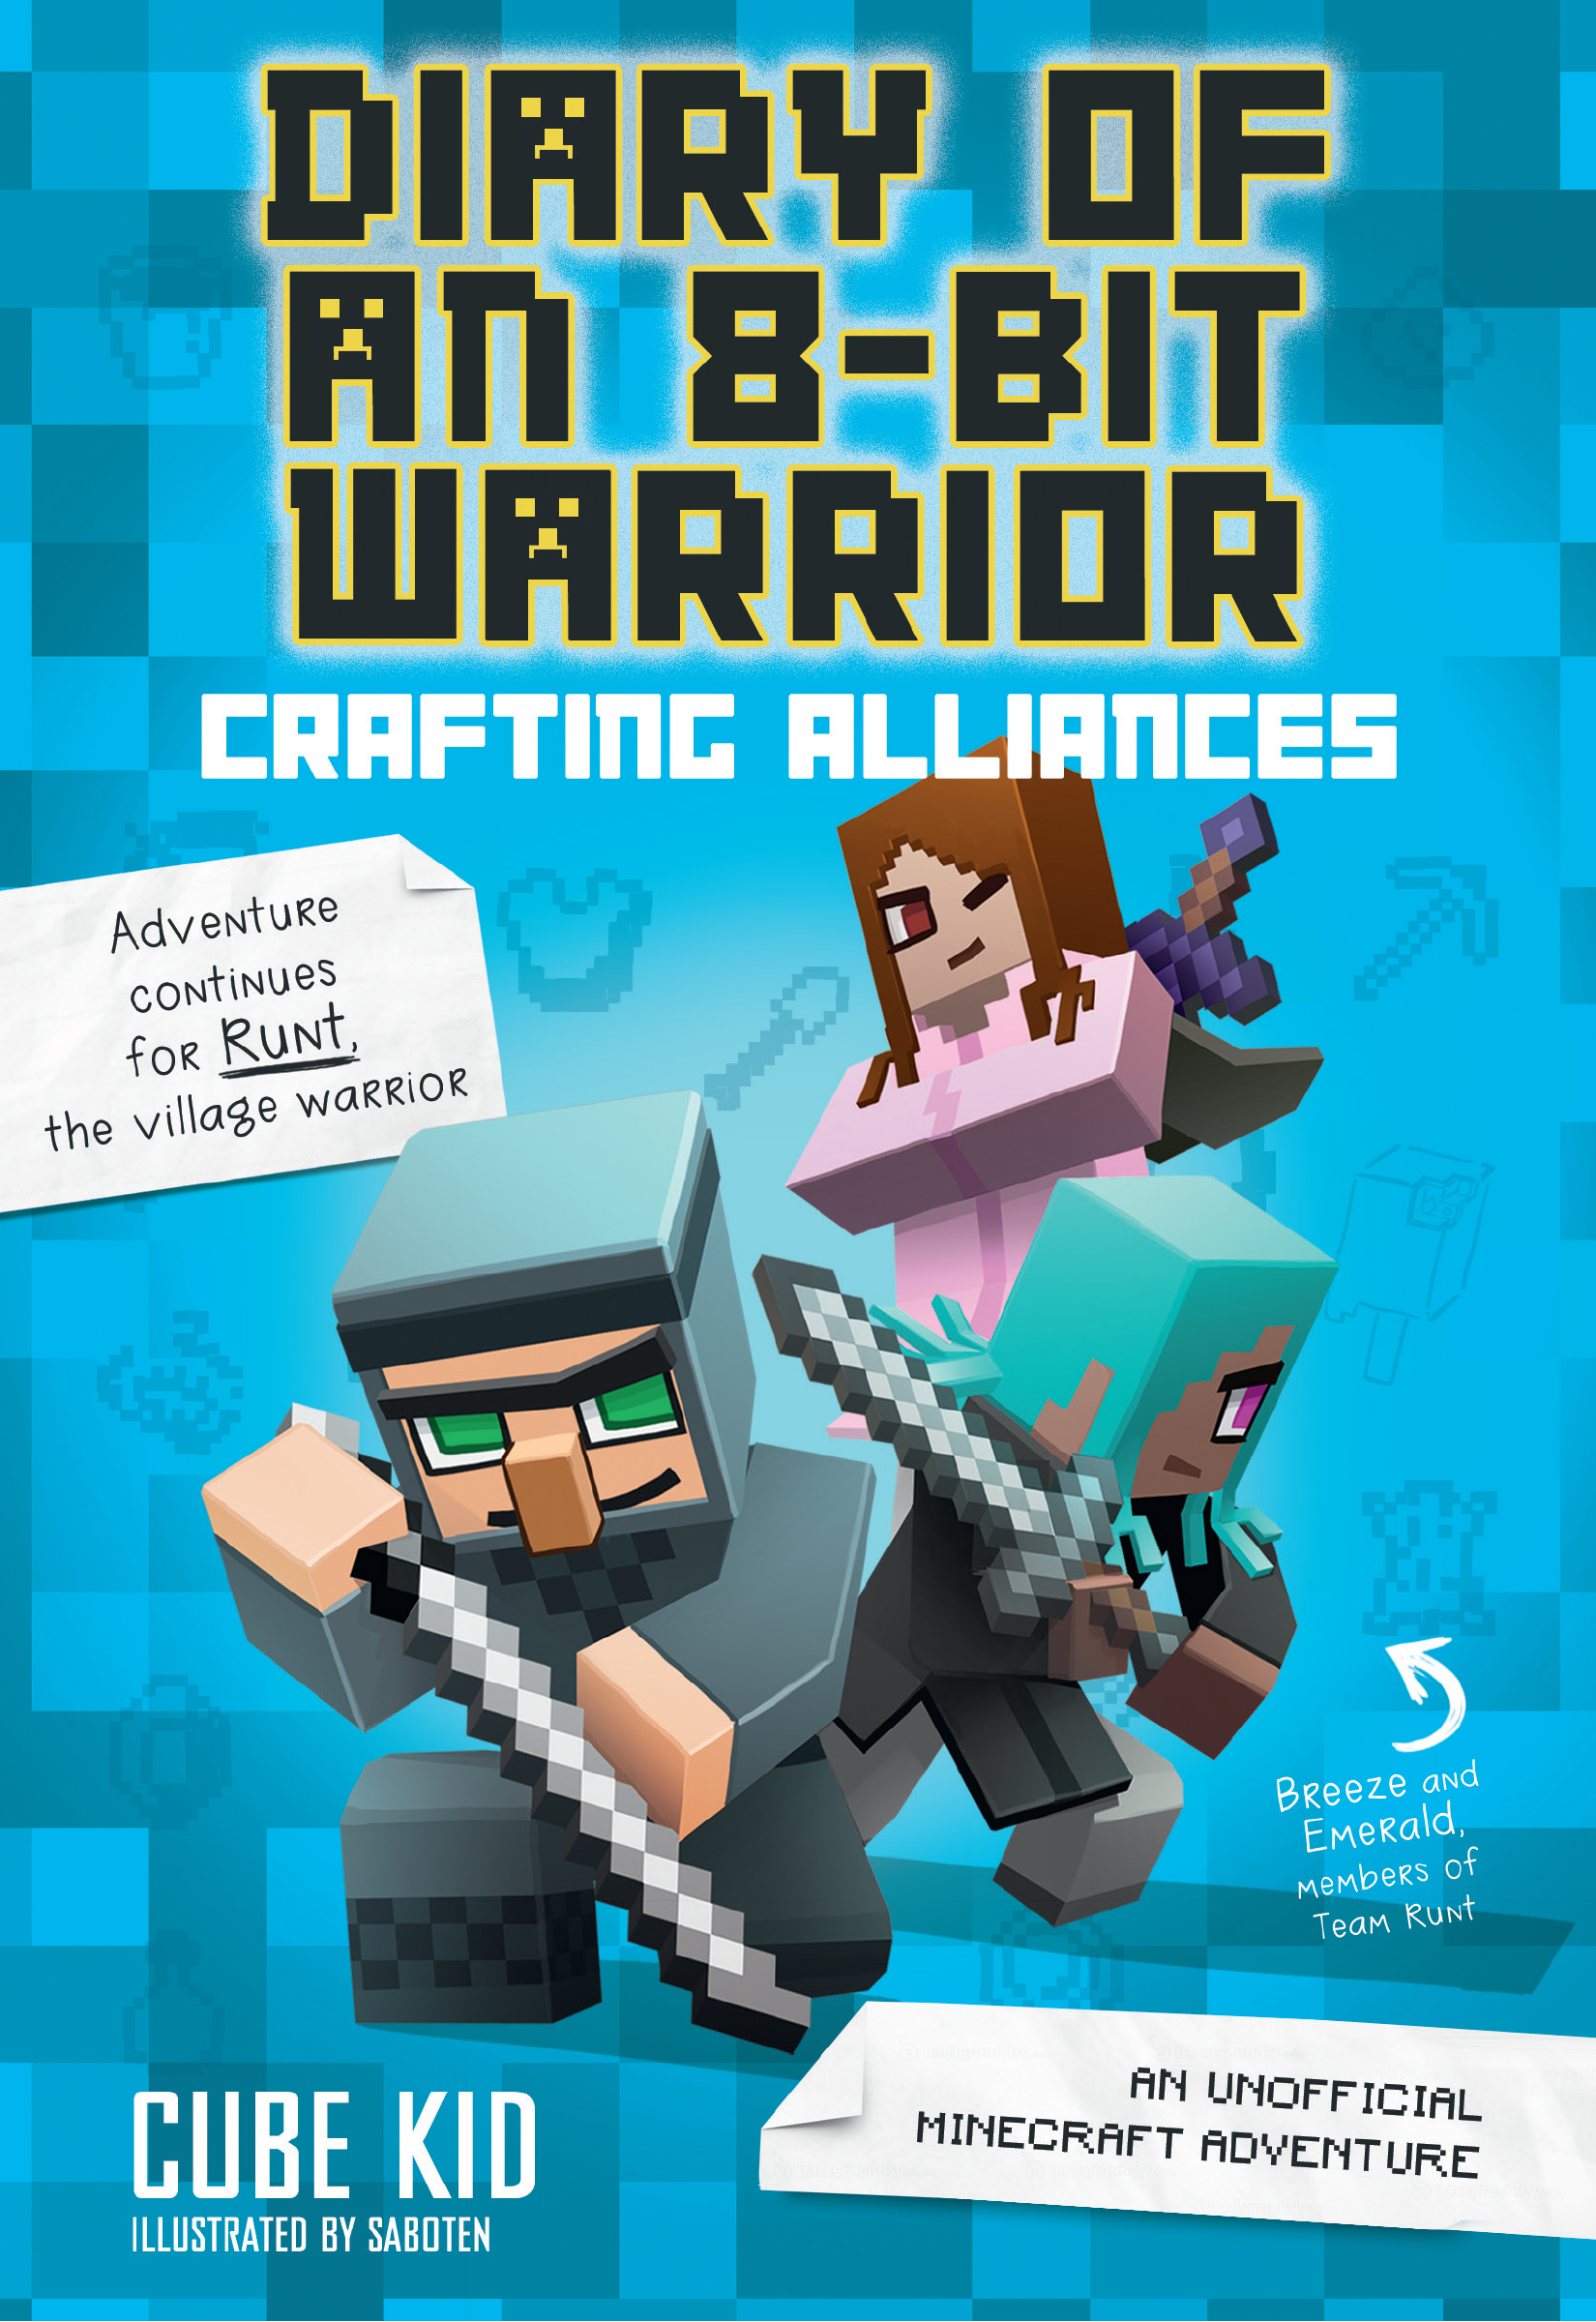 Diary of an 8-Bit Warrior: Crafting Alliances An Unofficial Minecraft Adventure